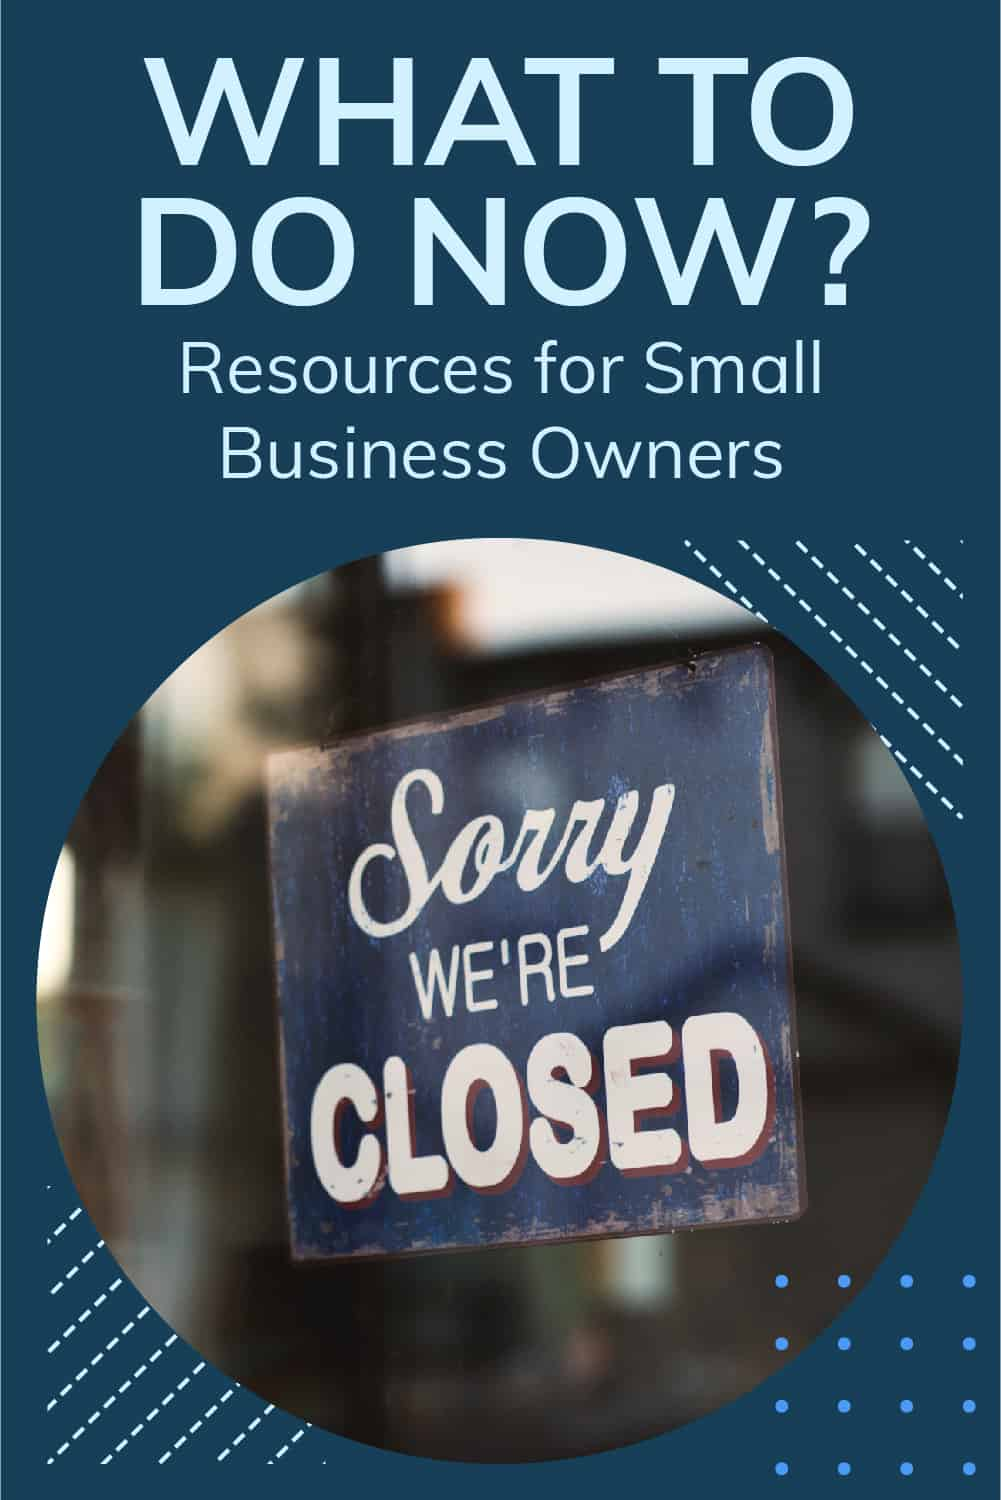 There are many resources available to help small business owners in this difficult time. Here are some resources and tools that may help you. via @scopedesign